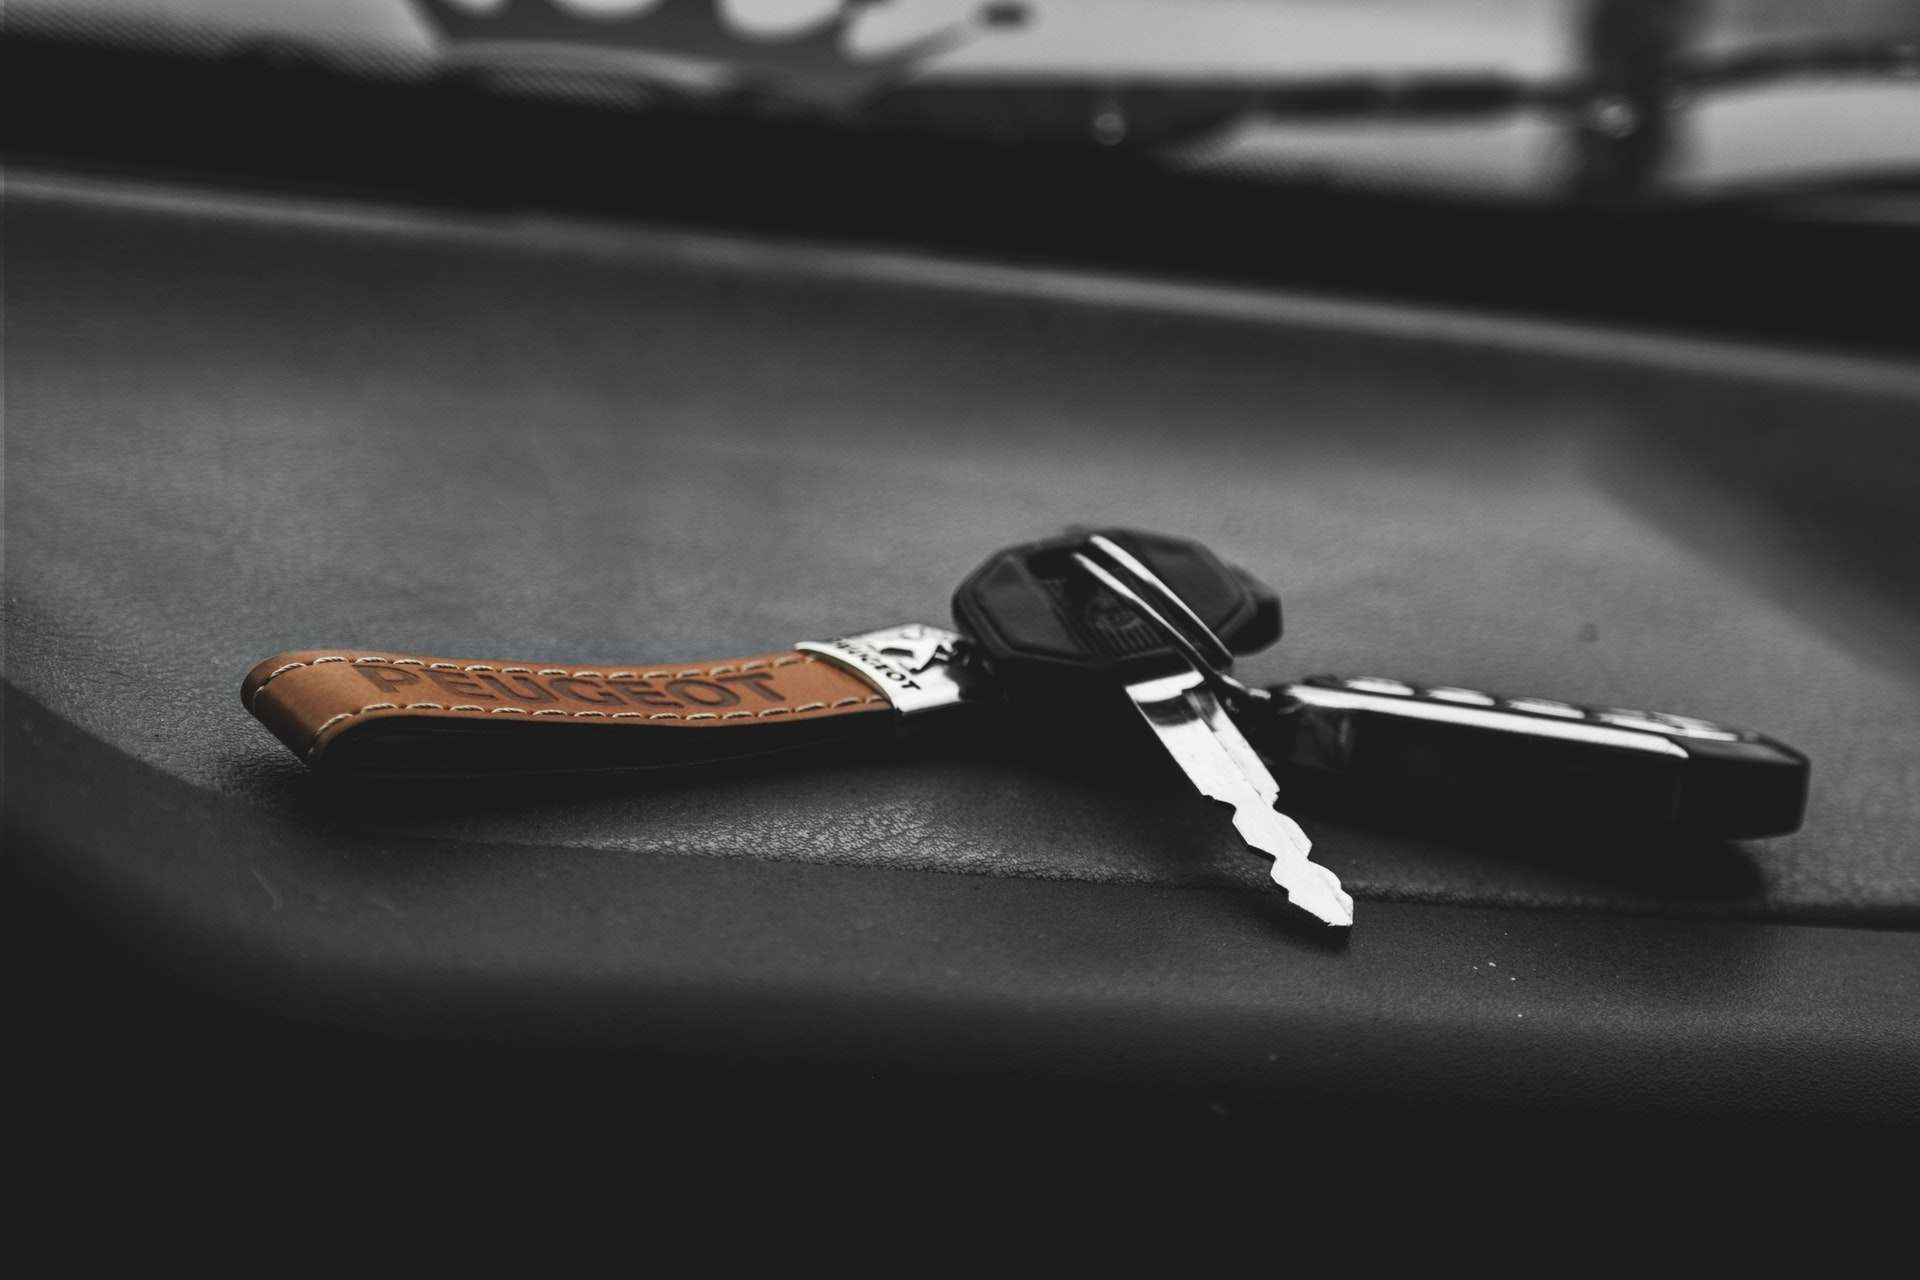 Motorcycle key replacement Royse